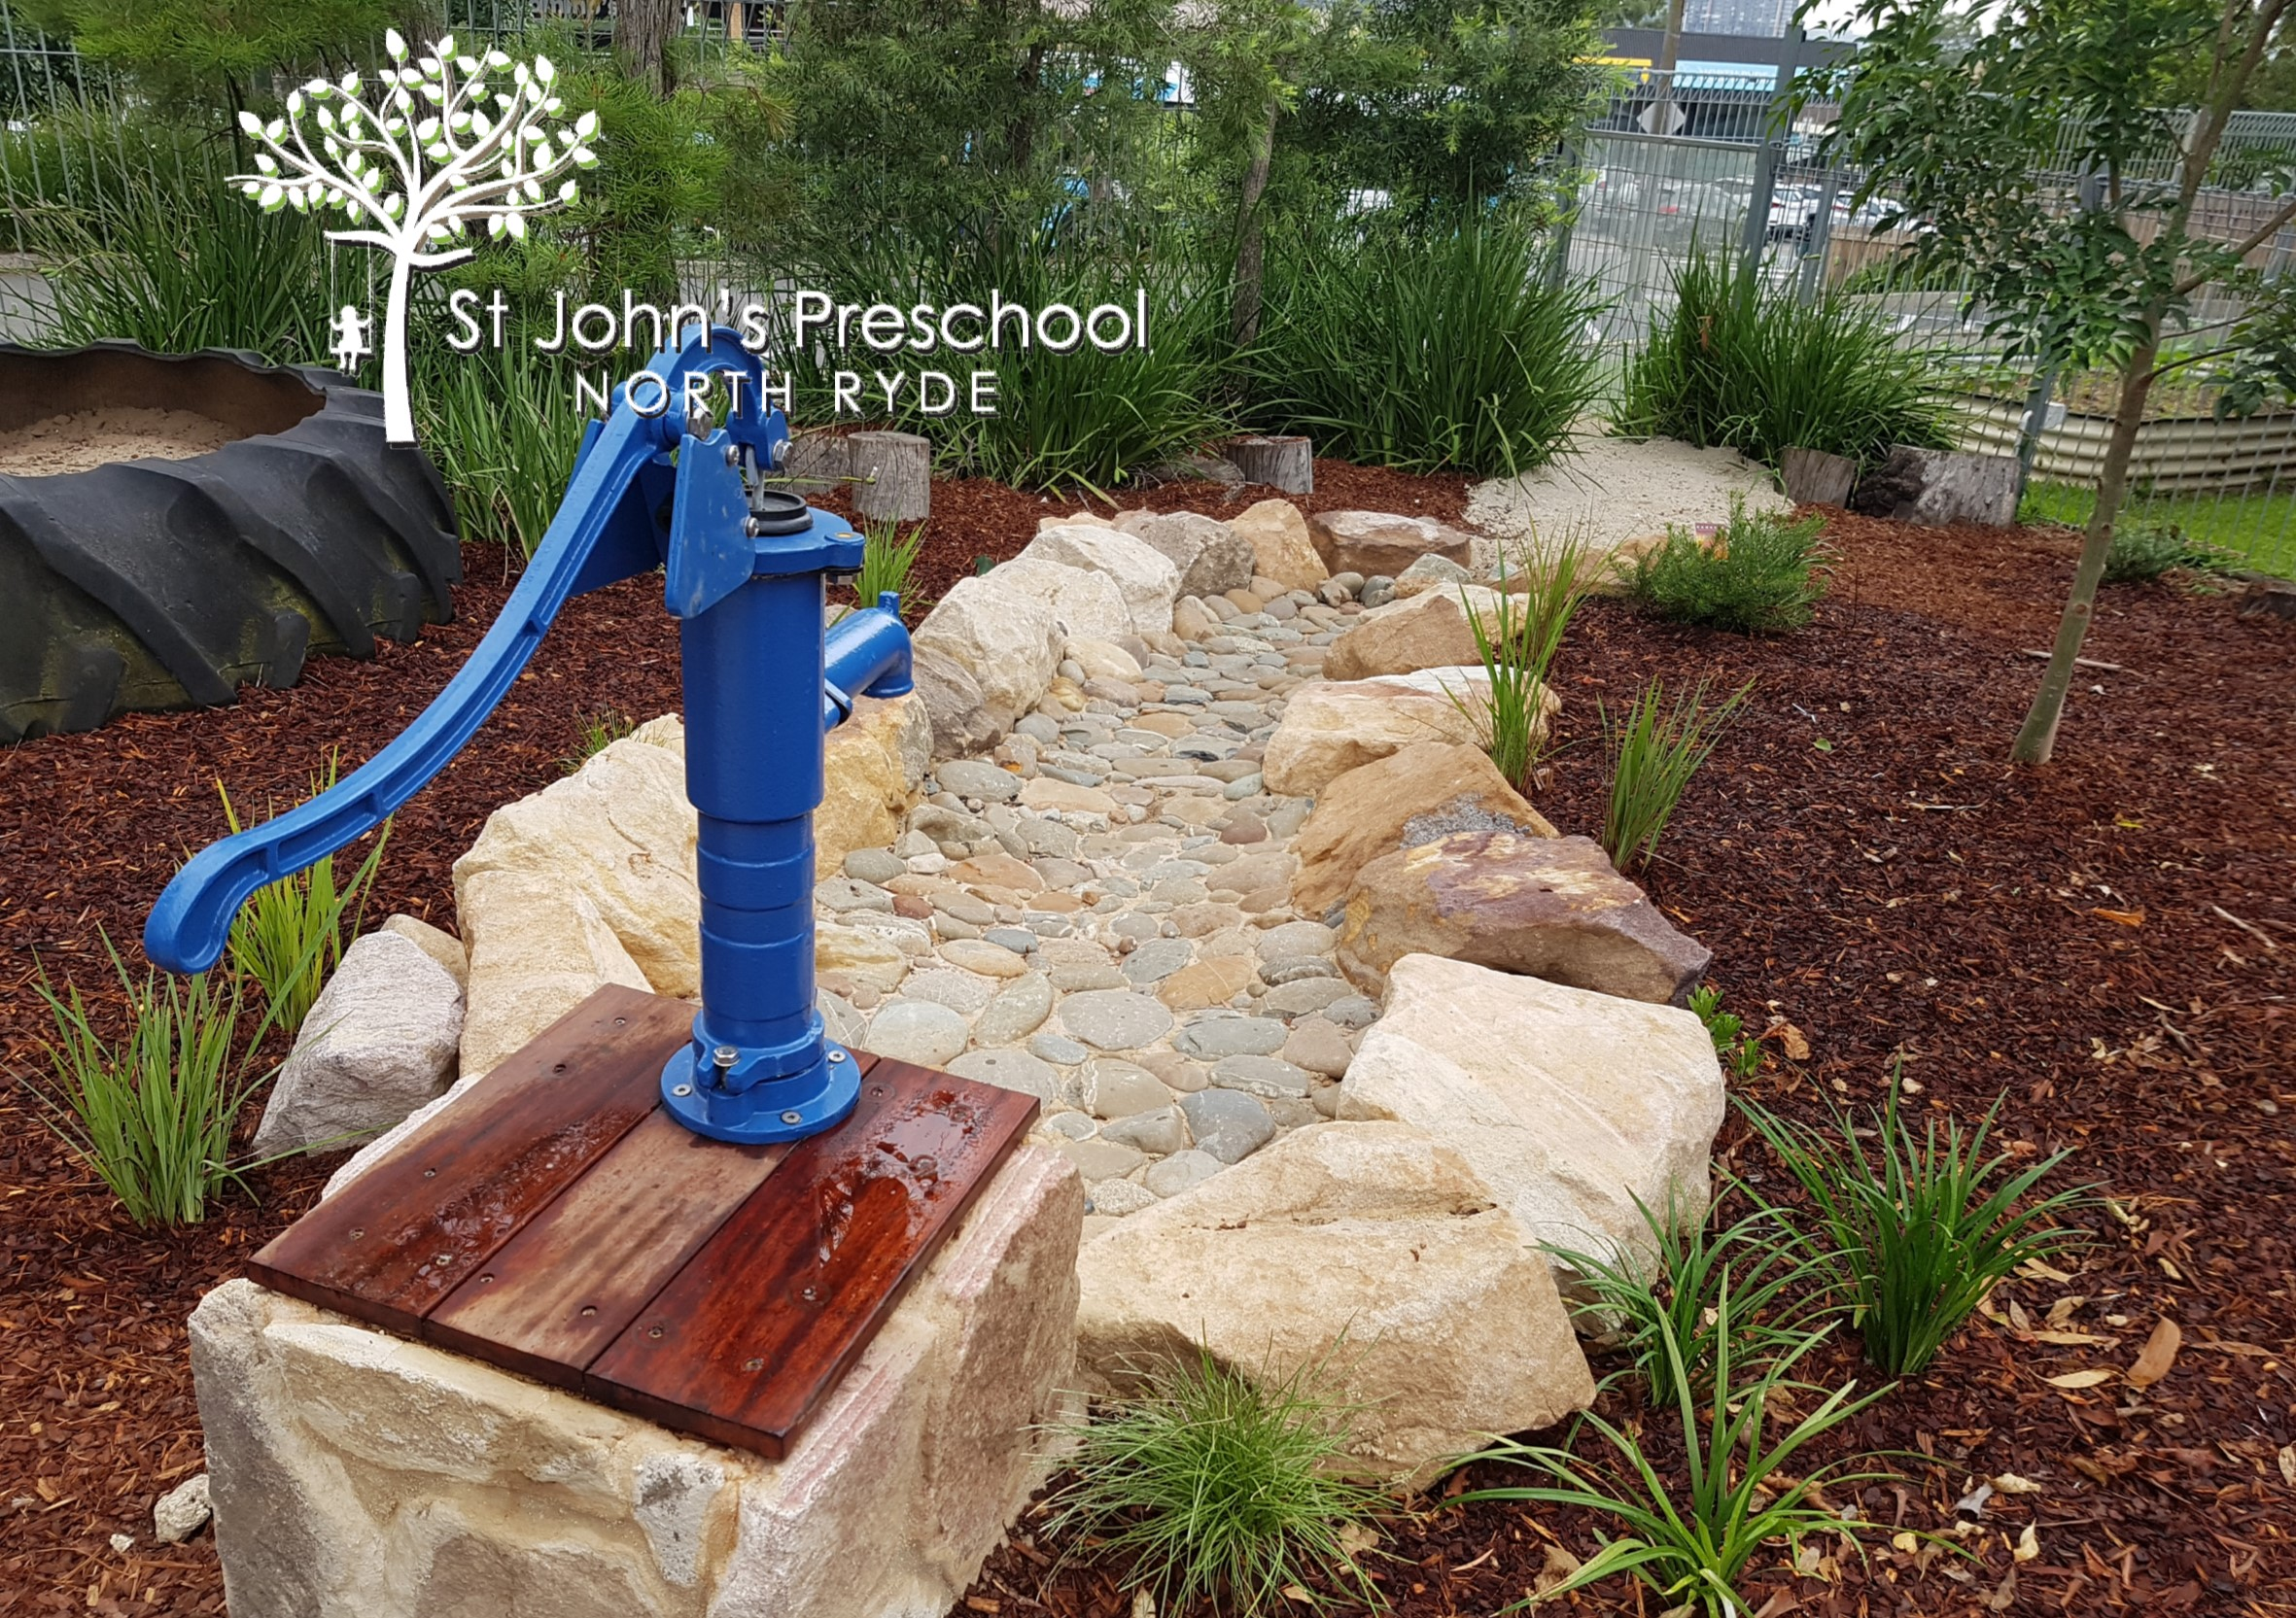 <p>Contact the Preschool Address: 152 Cox's Road, North Ryde, 2113 Phone: (02) 9888 7835 Preschool mobile – emergency contacts only: 0466 458 445 Email: preschool@northrydeanglican.org.au If you would like to visit to inspect the centre, please ring and book ahead. Booking times are generally available  9:30-11:00am Monday to Friday during […]</p>